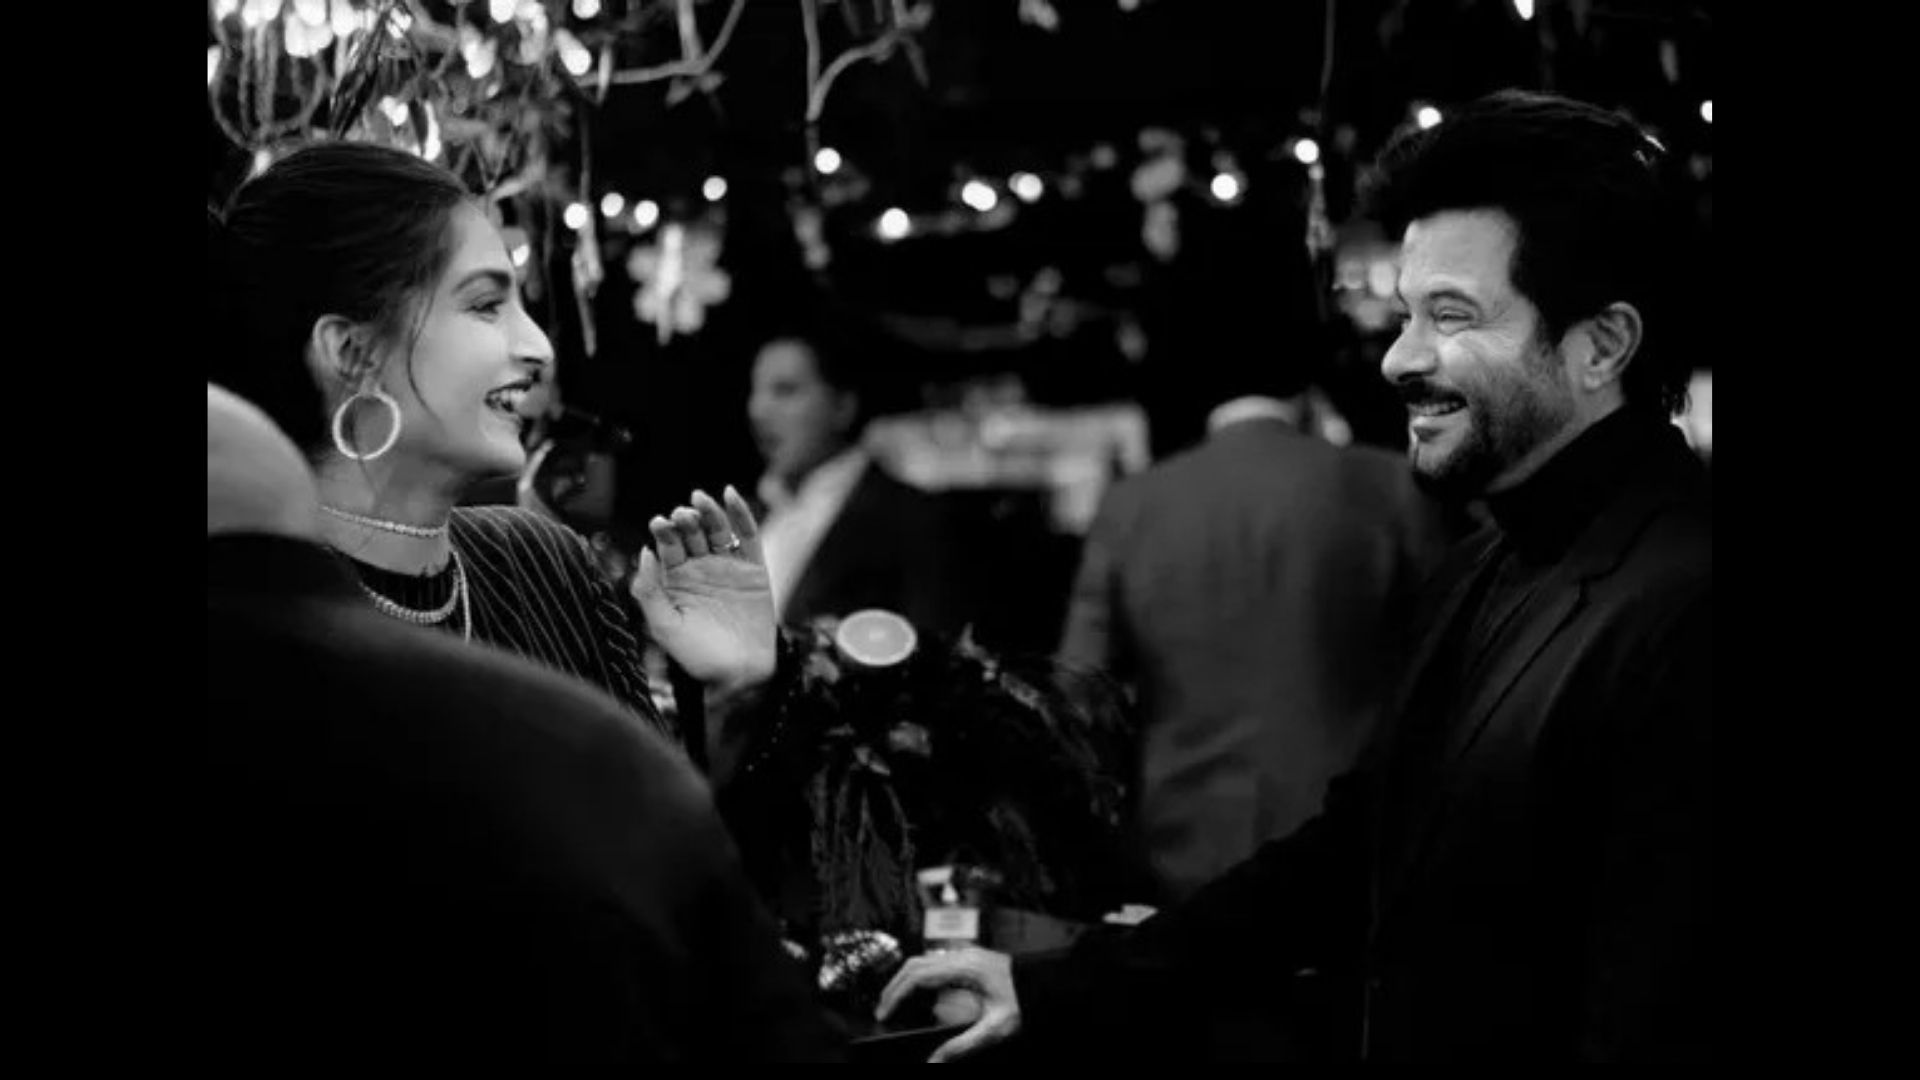 Anil Kapoor Reacts To A Troll Who Called Him And Sonam Kapoor 'Shameless'; 'Woh Shayad Bure Mood Me The'